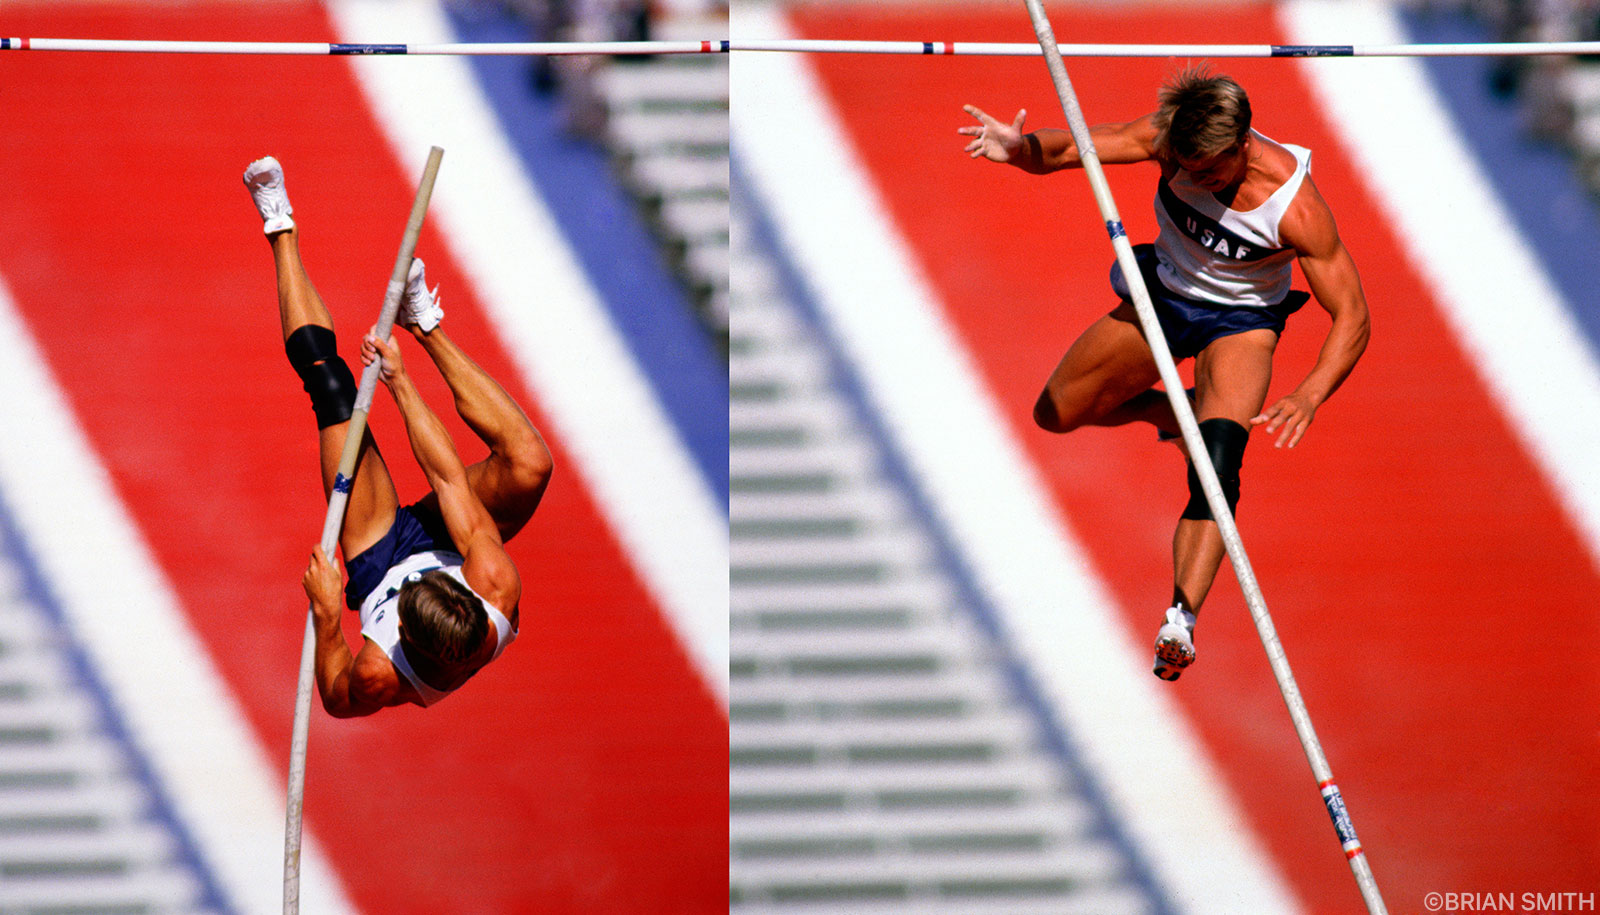 Olympic Pole Vault Trials sports photography by Brian Smith